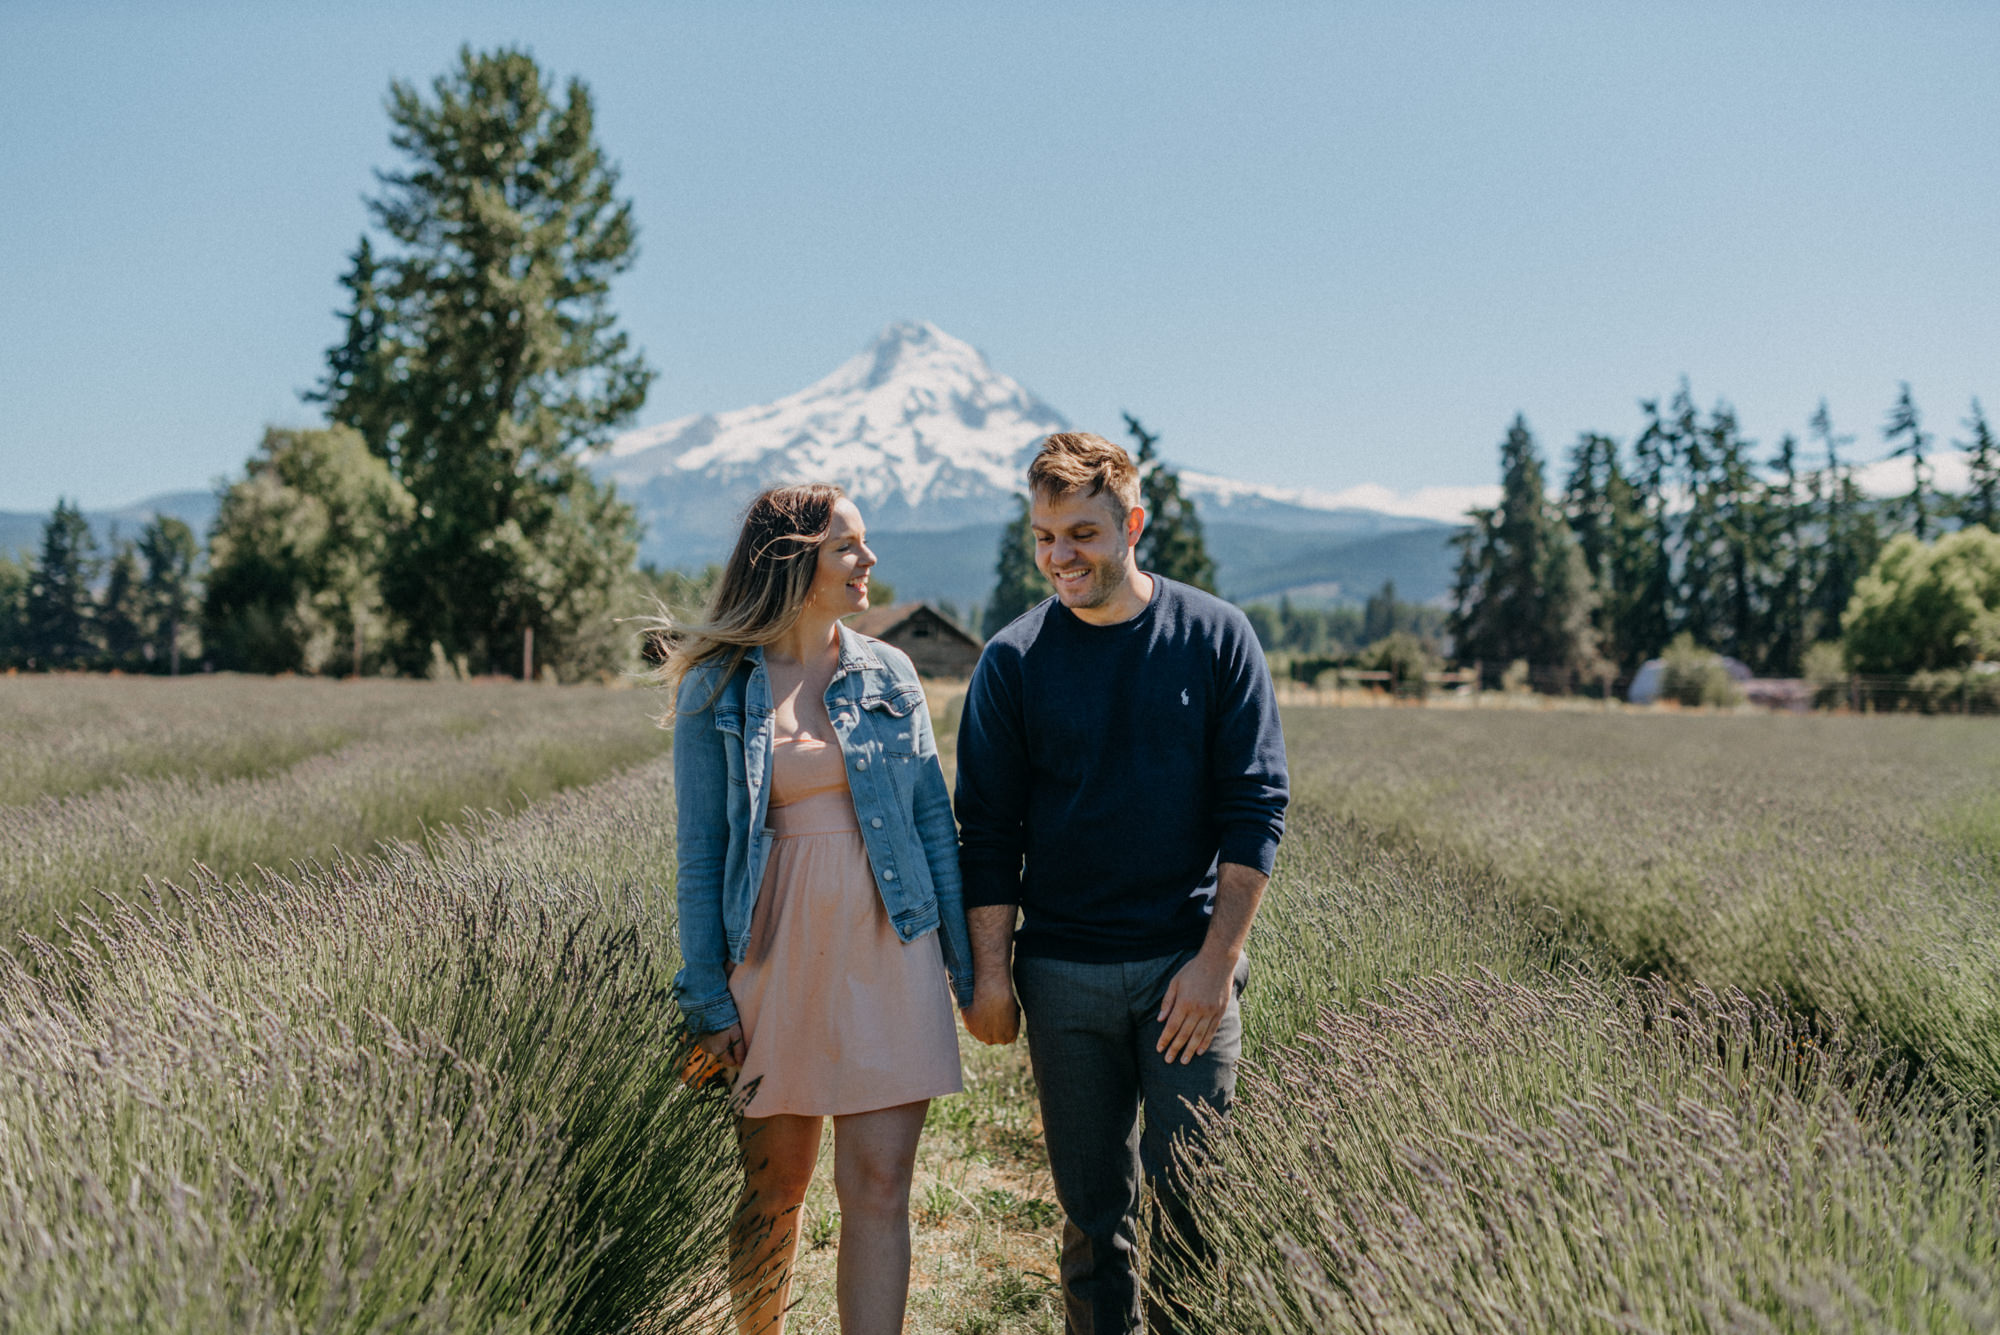 1-Mt-hood-lavender-farms-engagment-couple-summer-6926.jpg